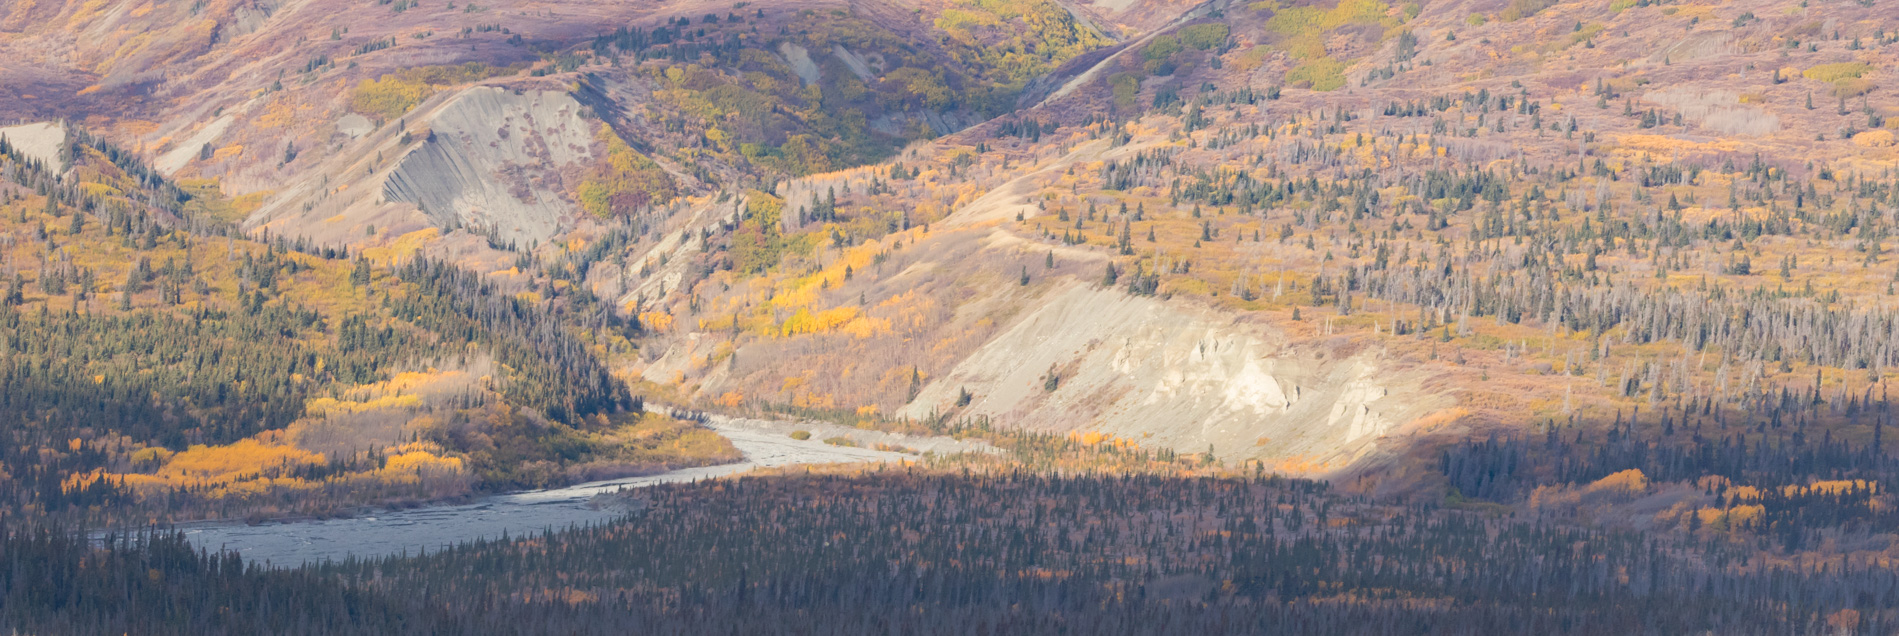 Bend in the River on the way to Carcross - DMHopp